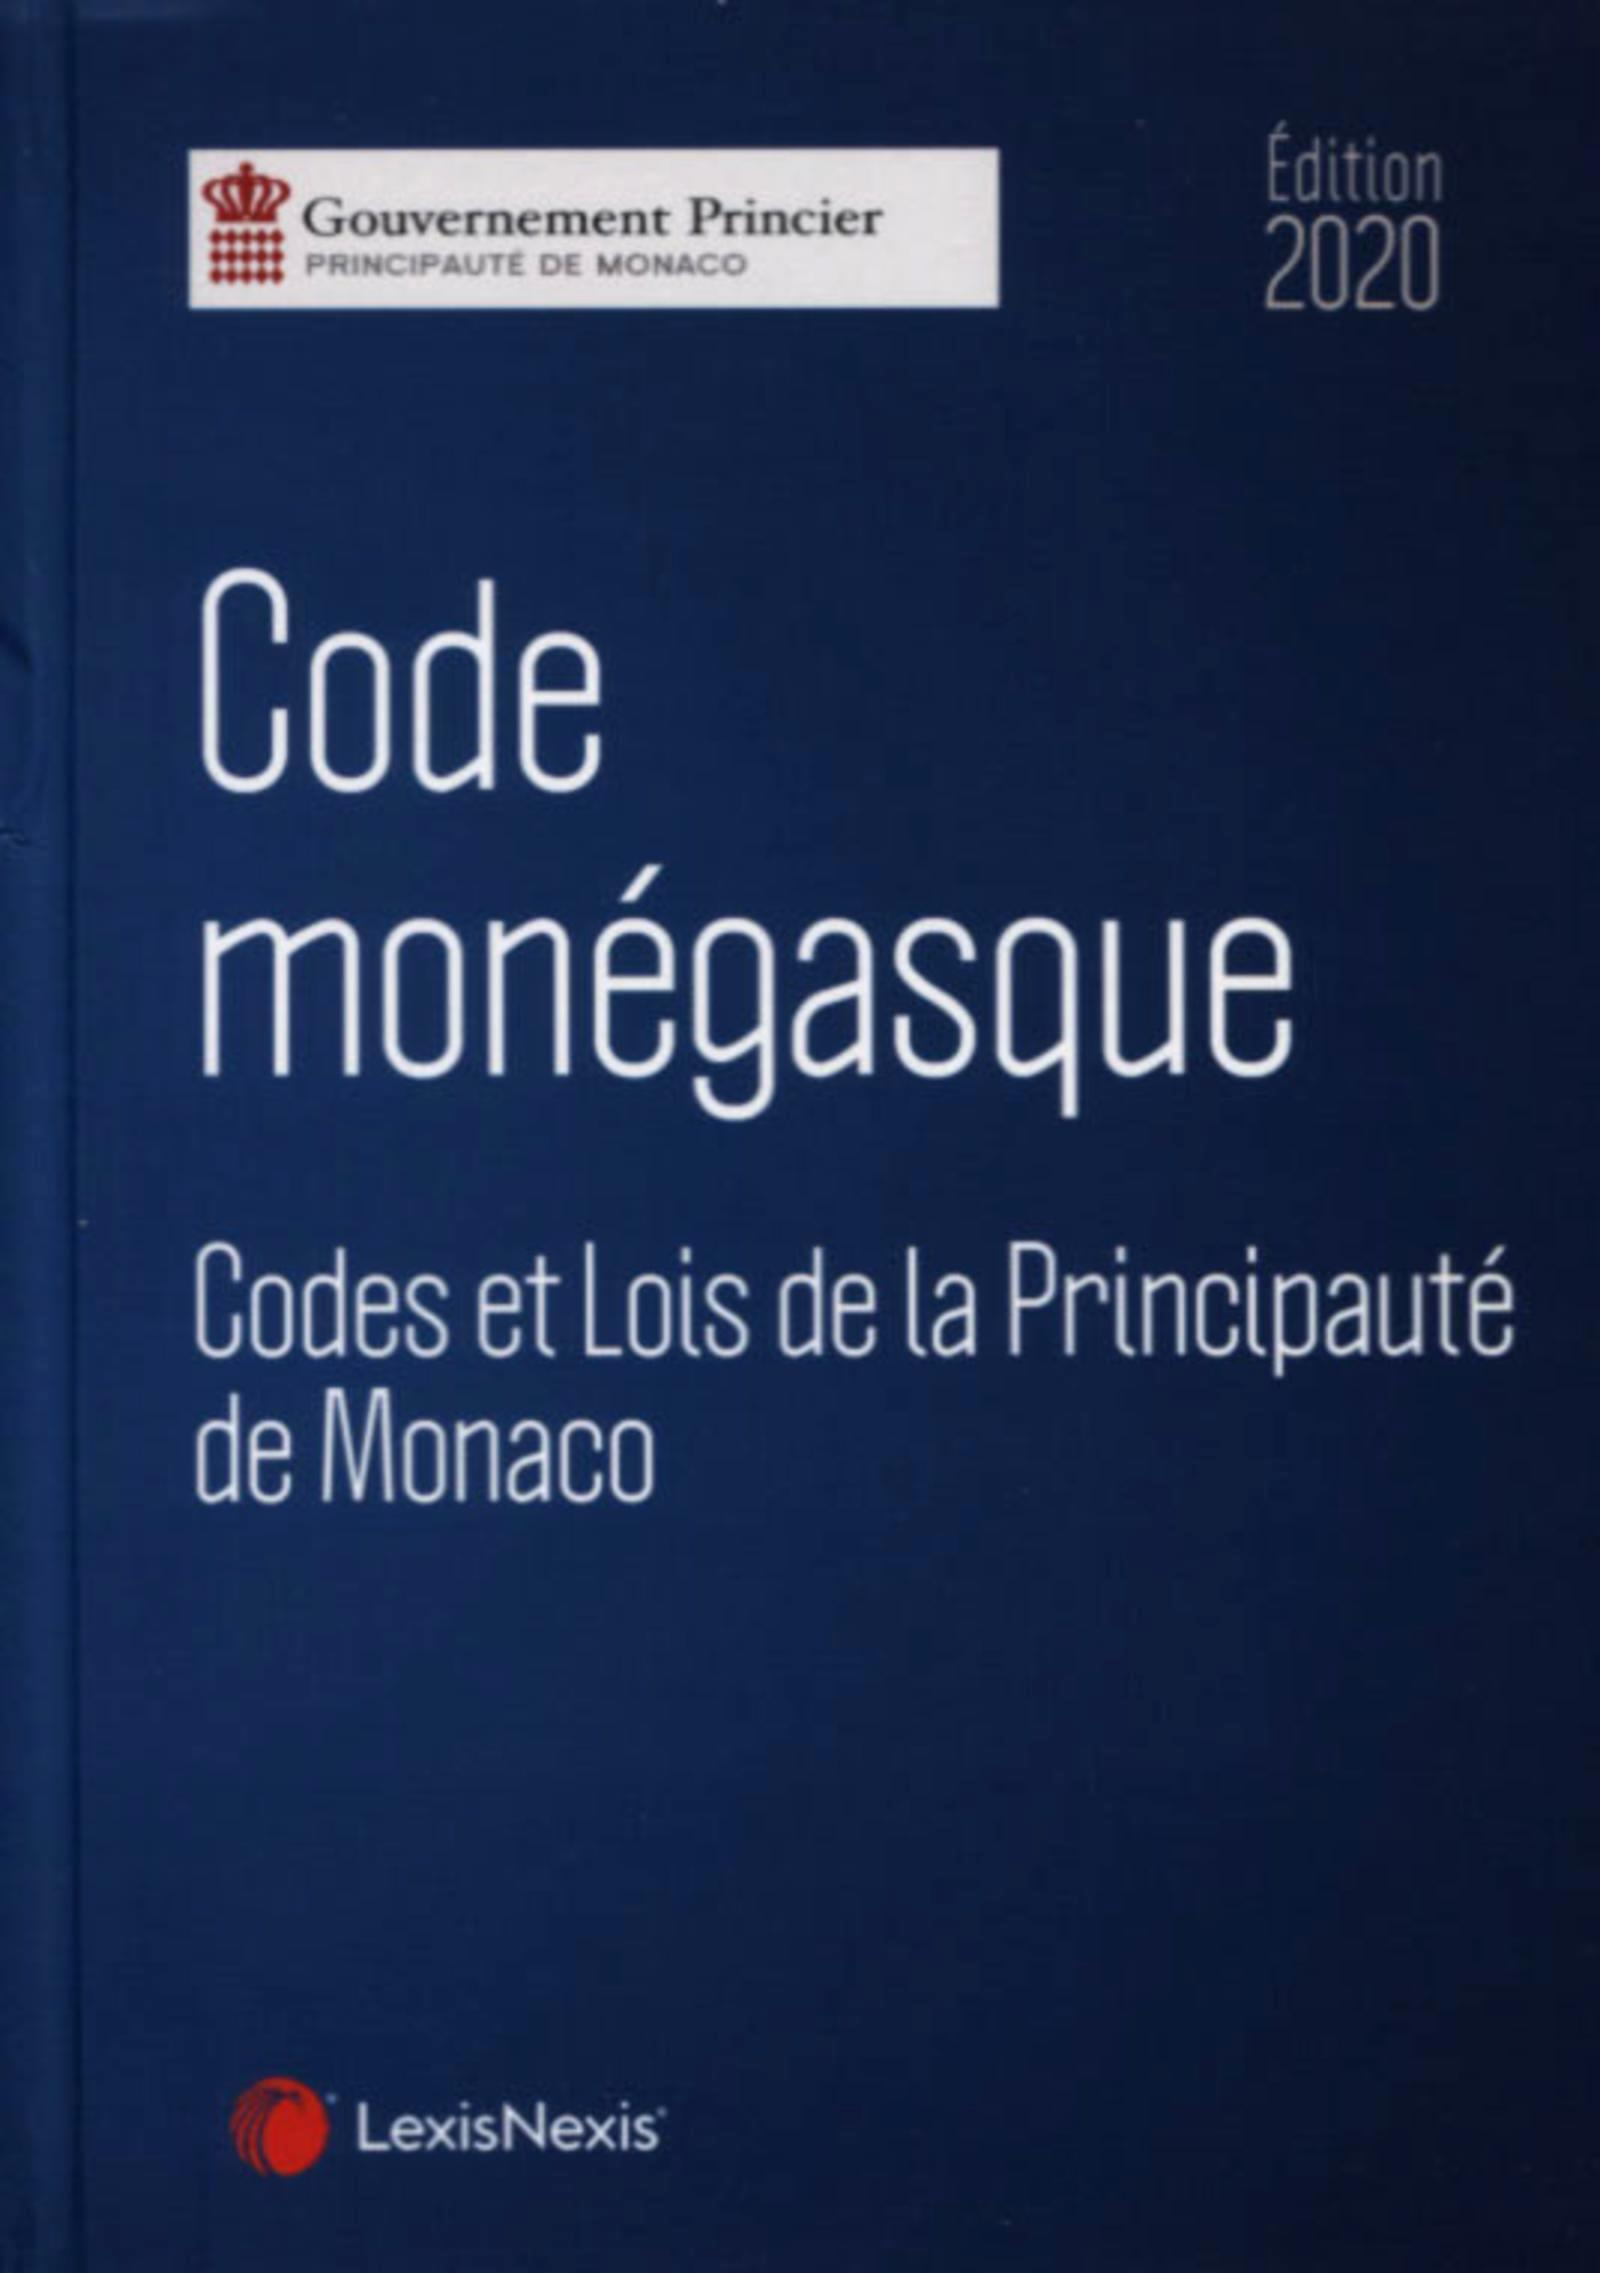 CODE MONEGASQUE 2020